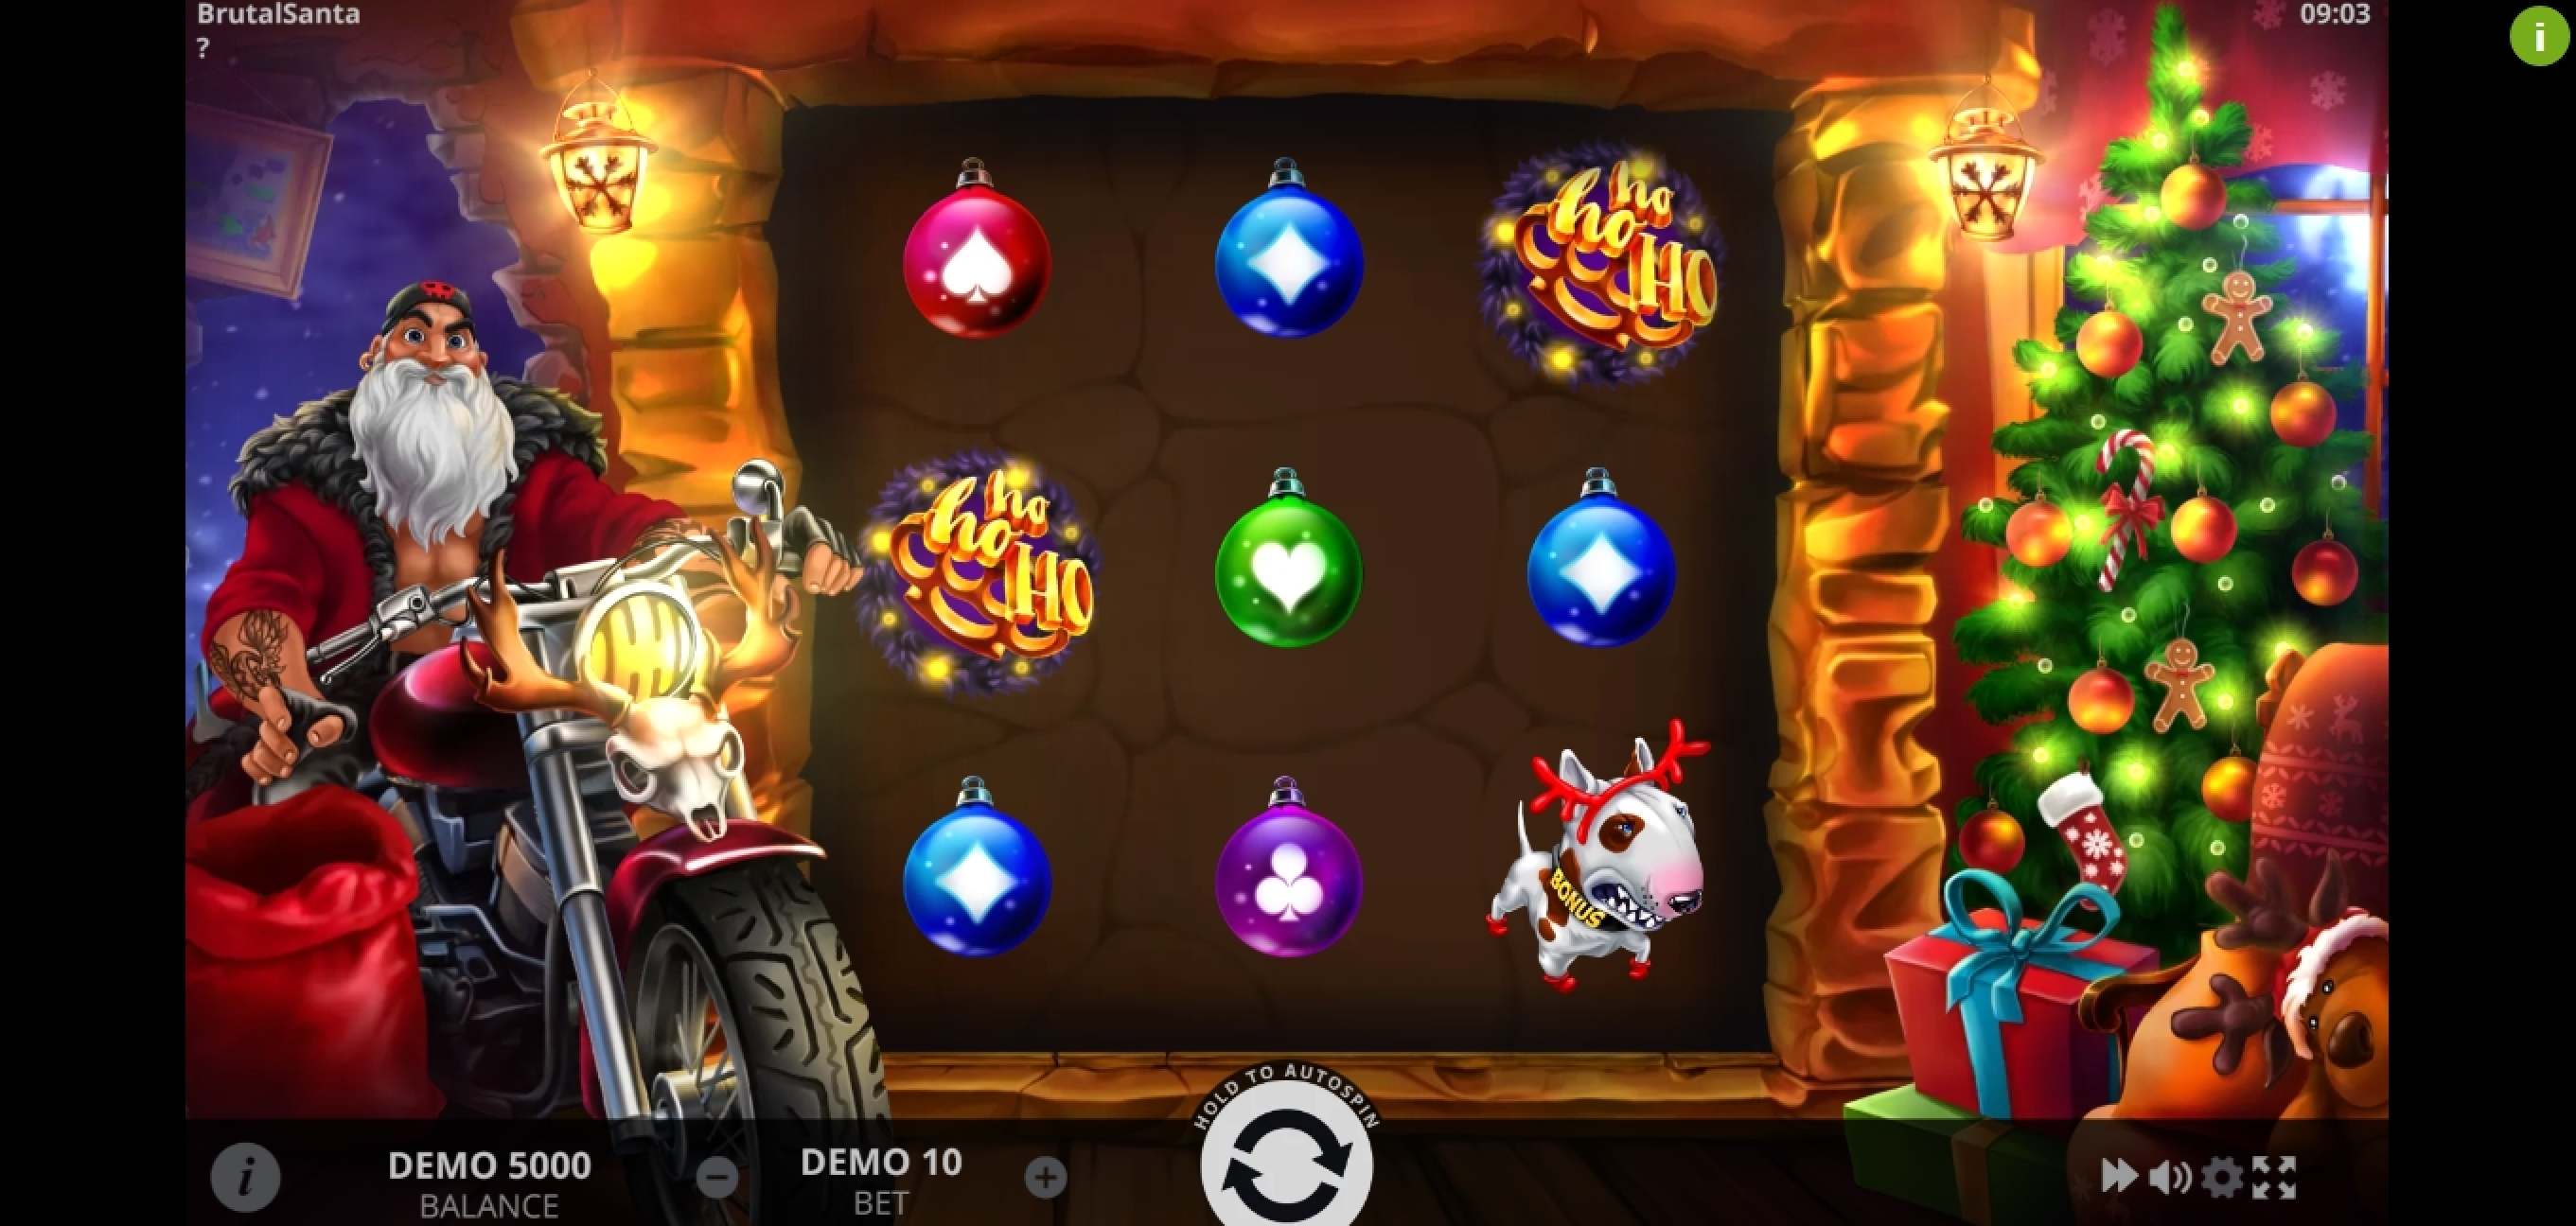 Reels in Brutal Santa Slot Game by Evoplay Entertainment